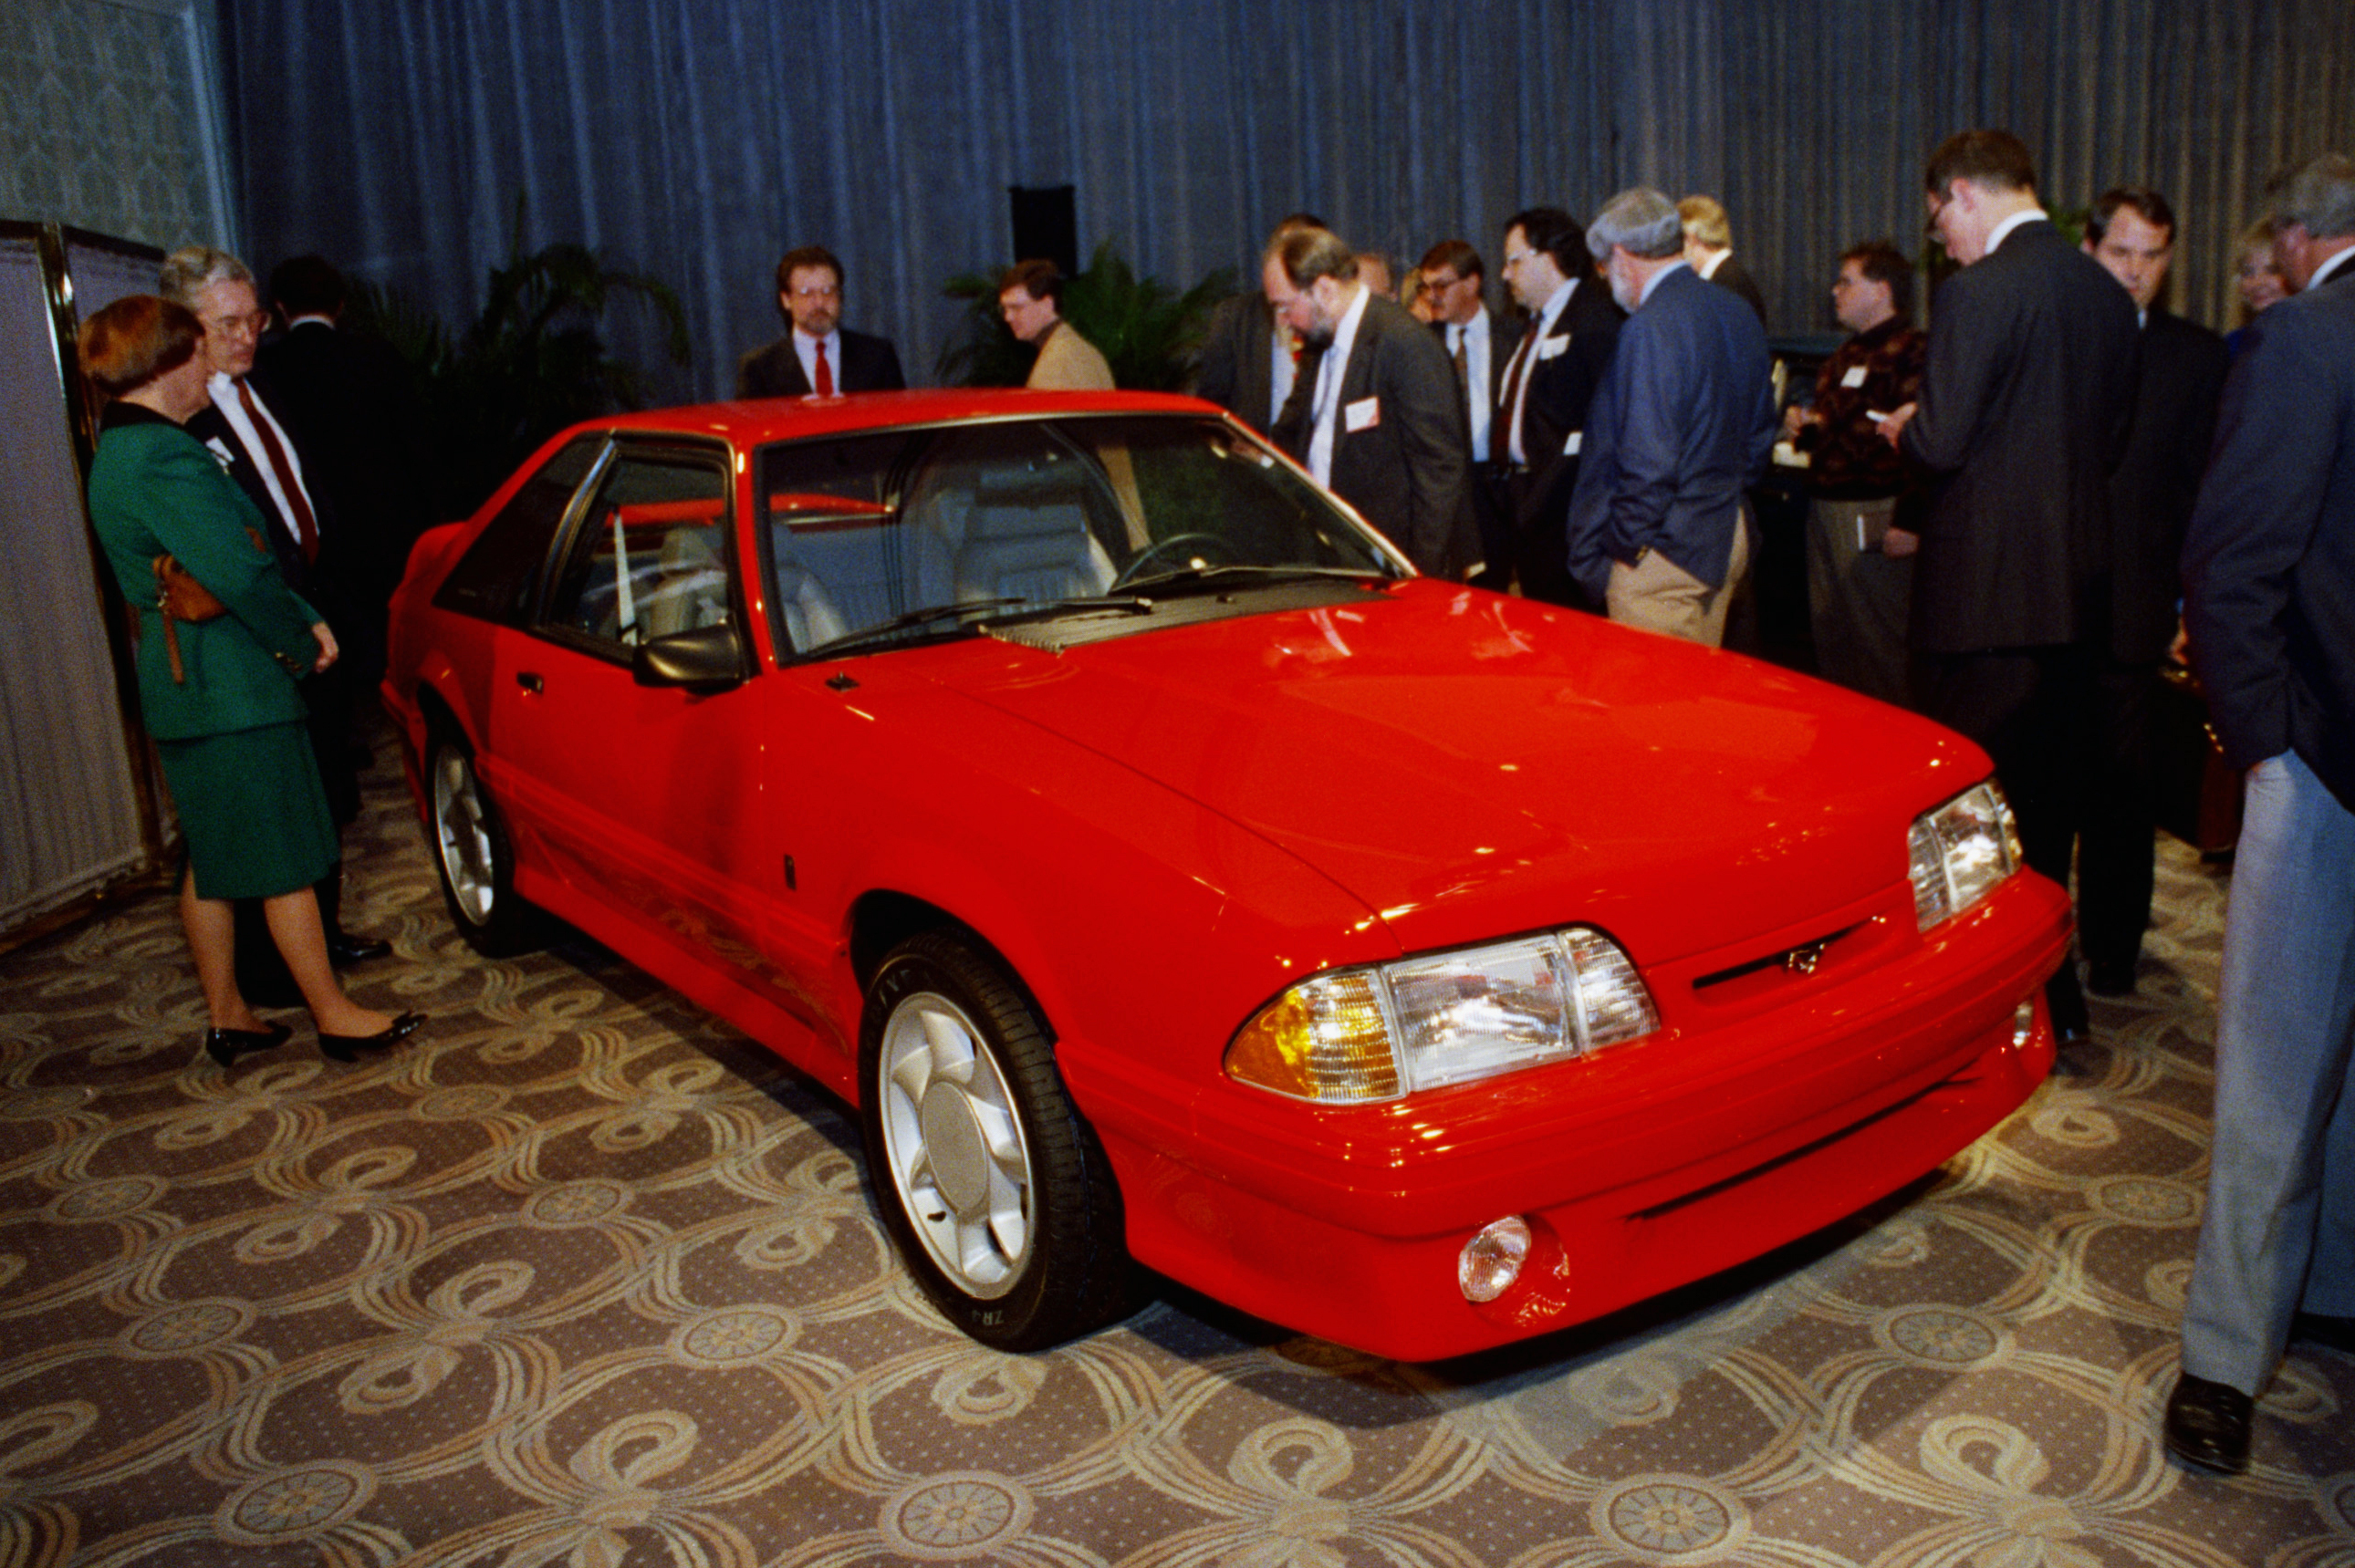 Reporters look over the limited edition 1993 Ford Mustang Cobra after its unveiling Feb. 6, 1992, in Chicago. This was part of the third generation of Mustangs that were produced from 1979 to 1993.